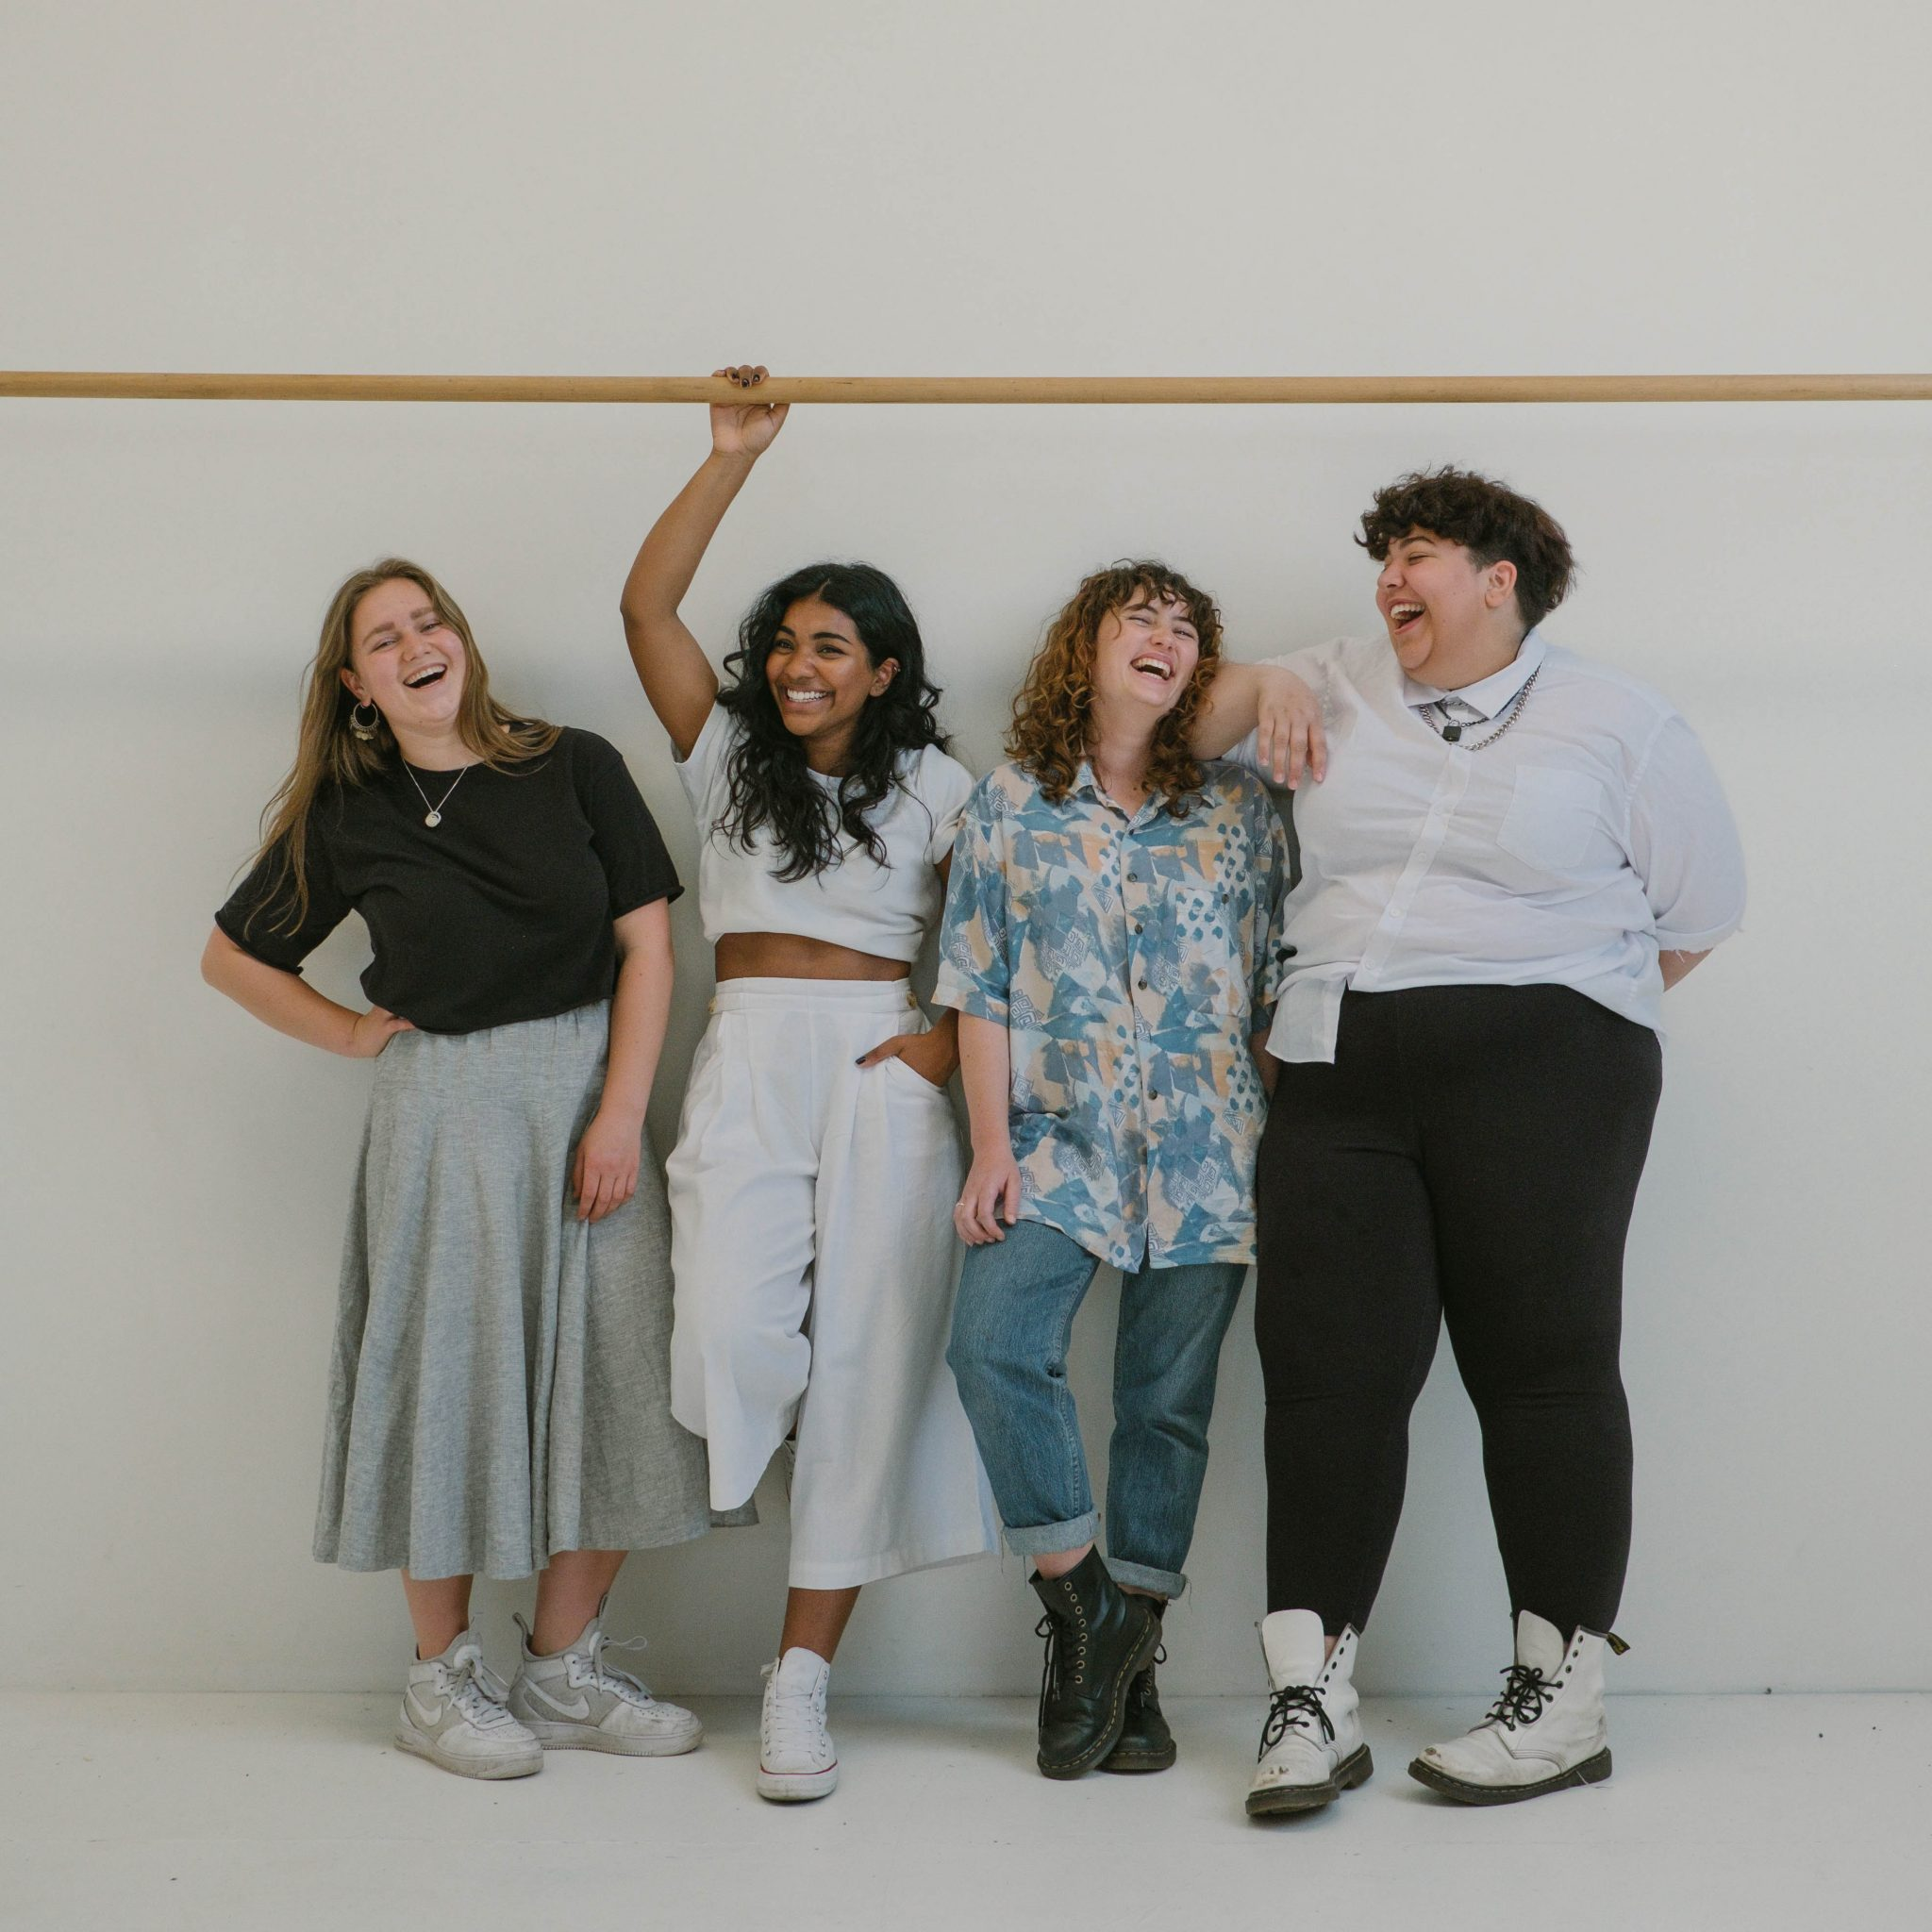 Group of 4 ladies of different body sizes standing against a wall laughing